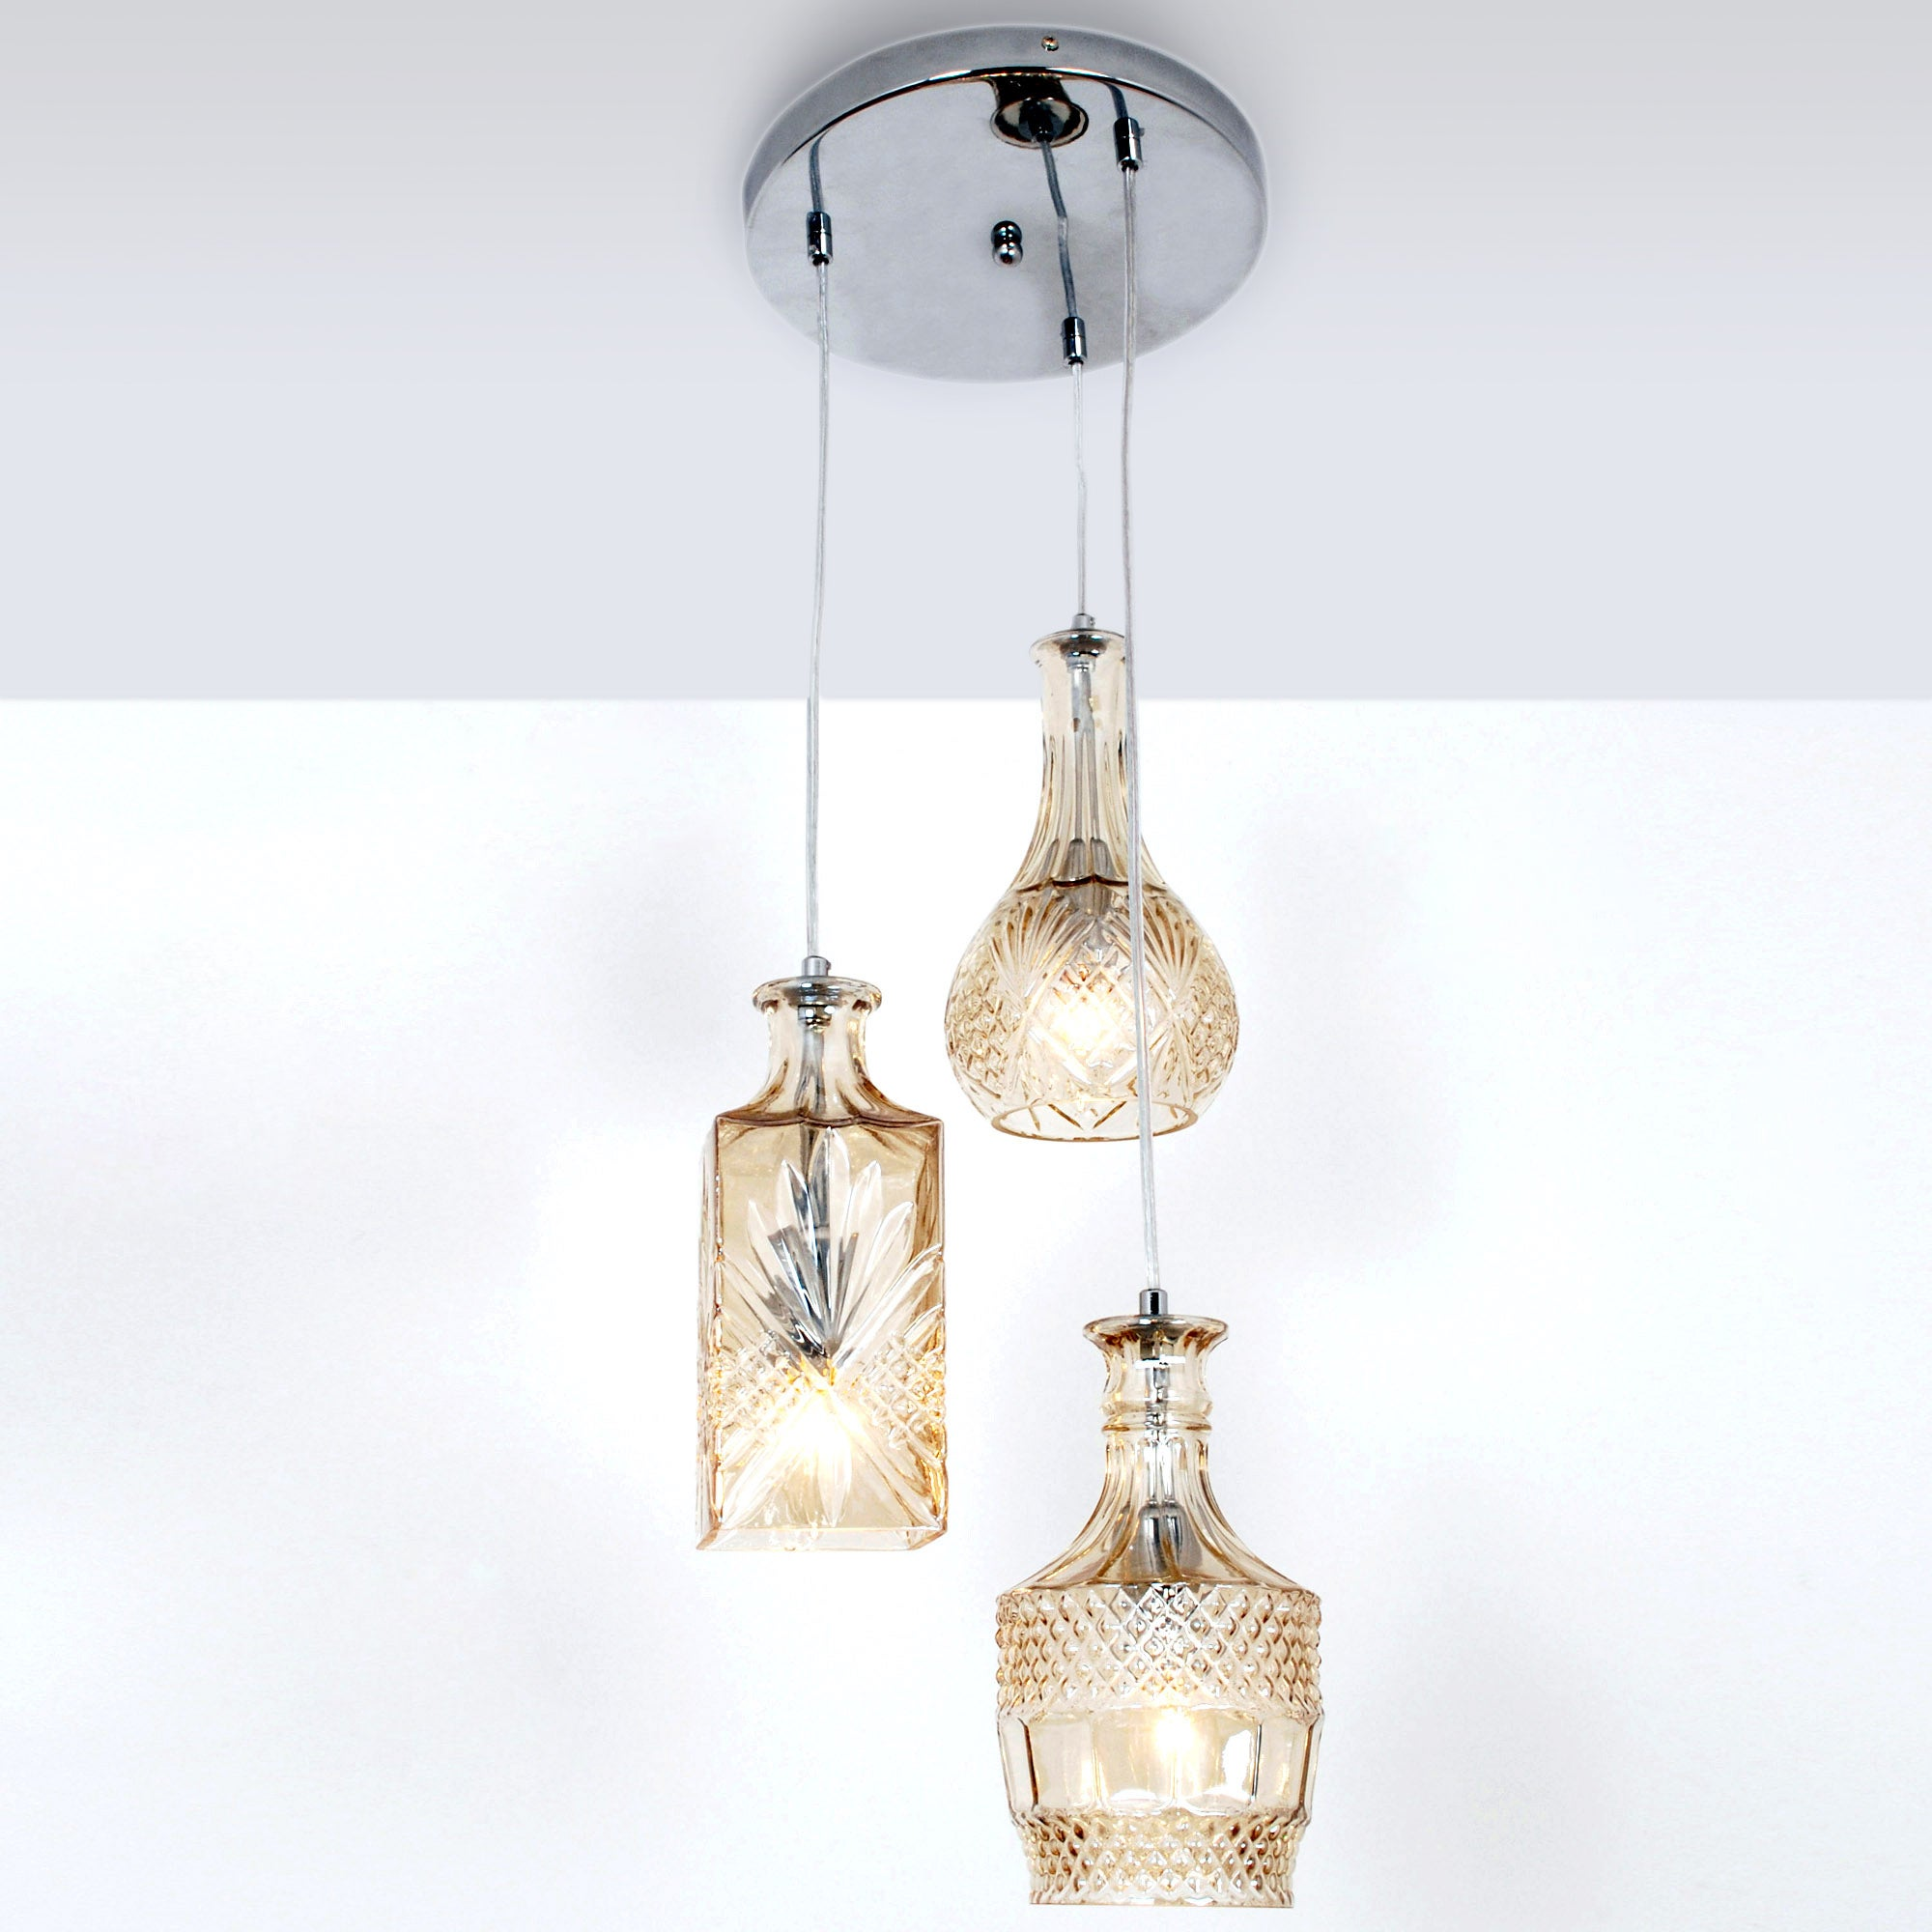 3 Glass Decanter Cluster Ceiling Light Fitting